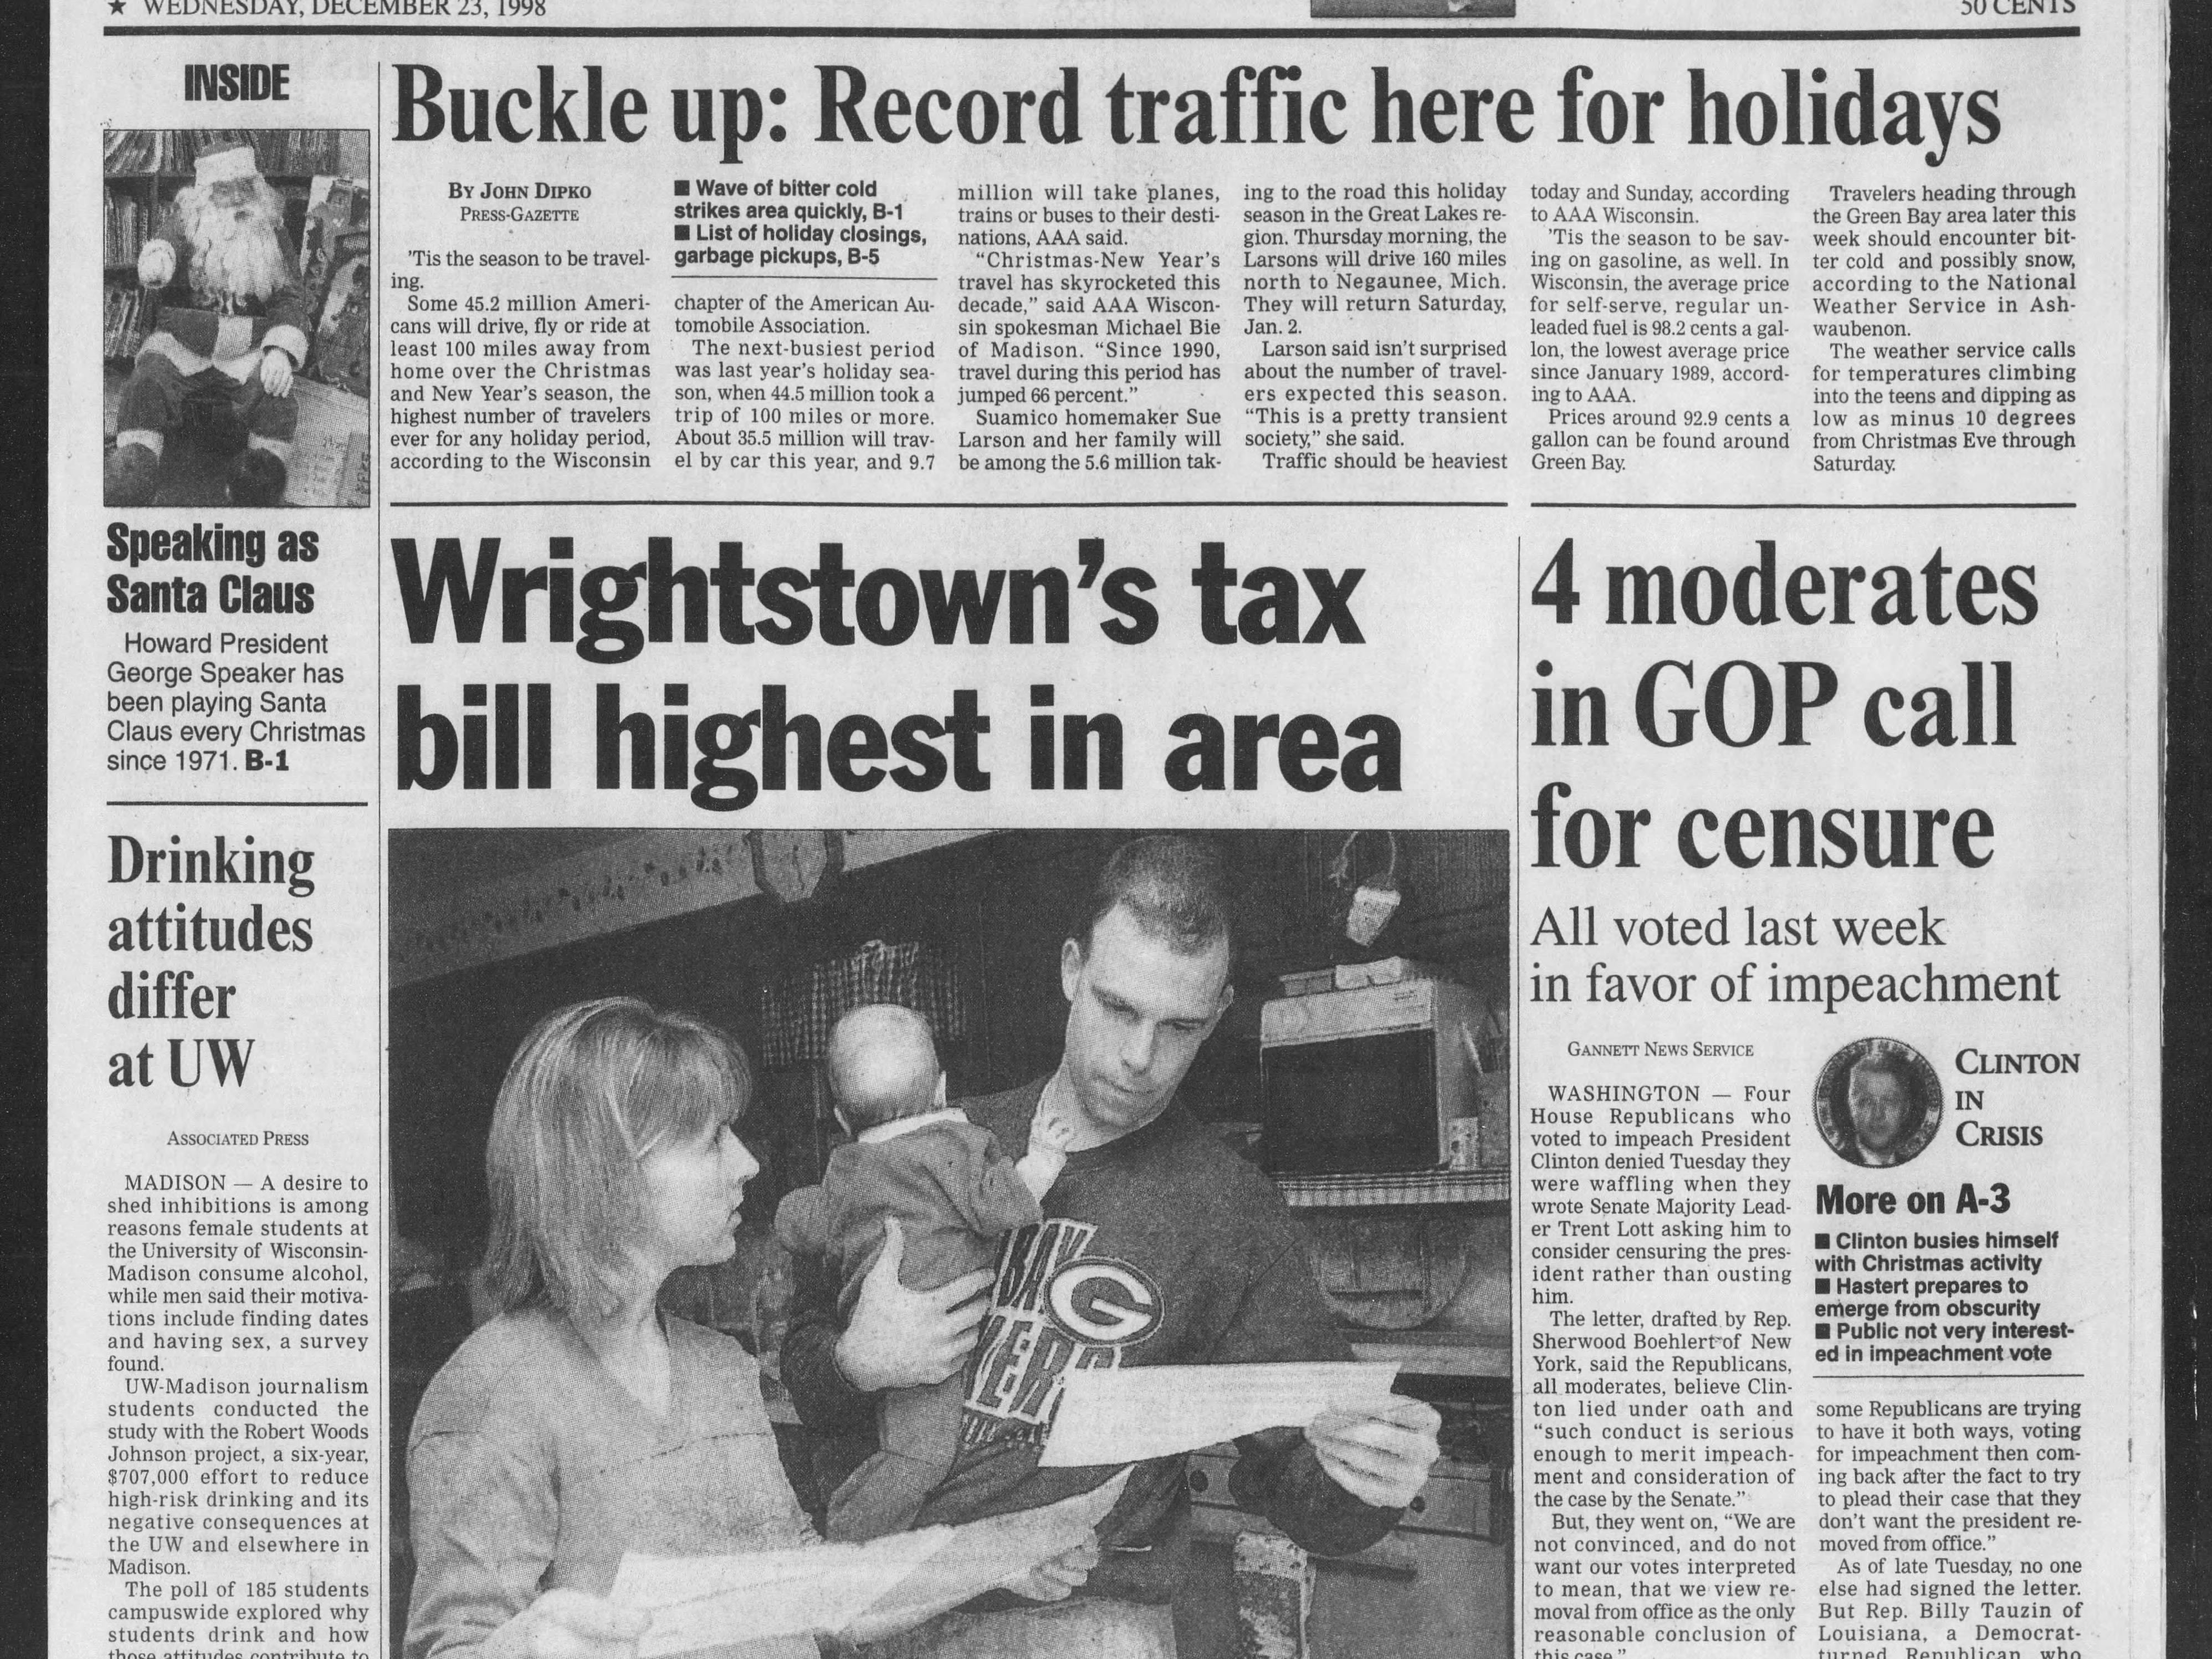 Today in History: Dec. 23, 1998